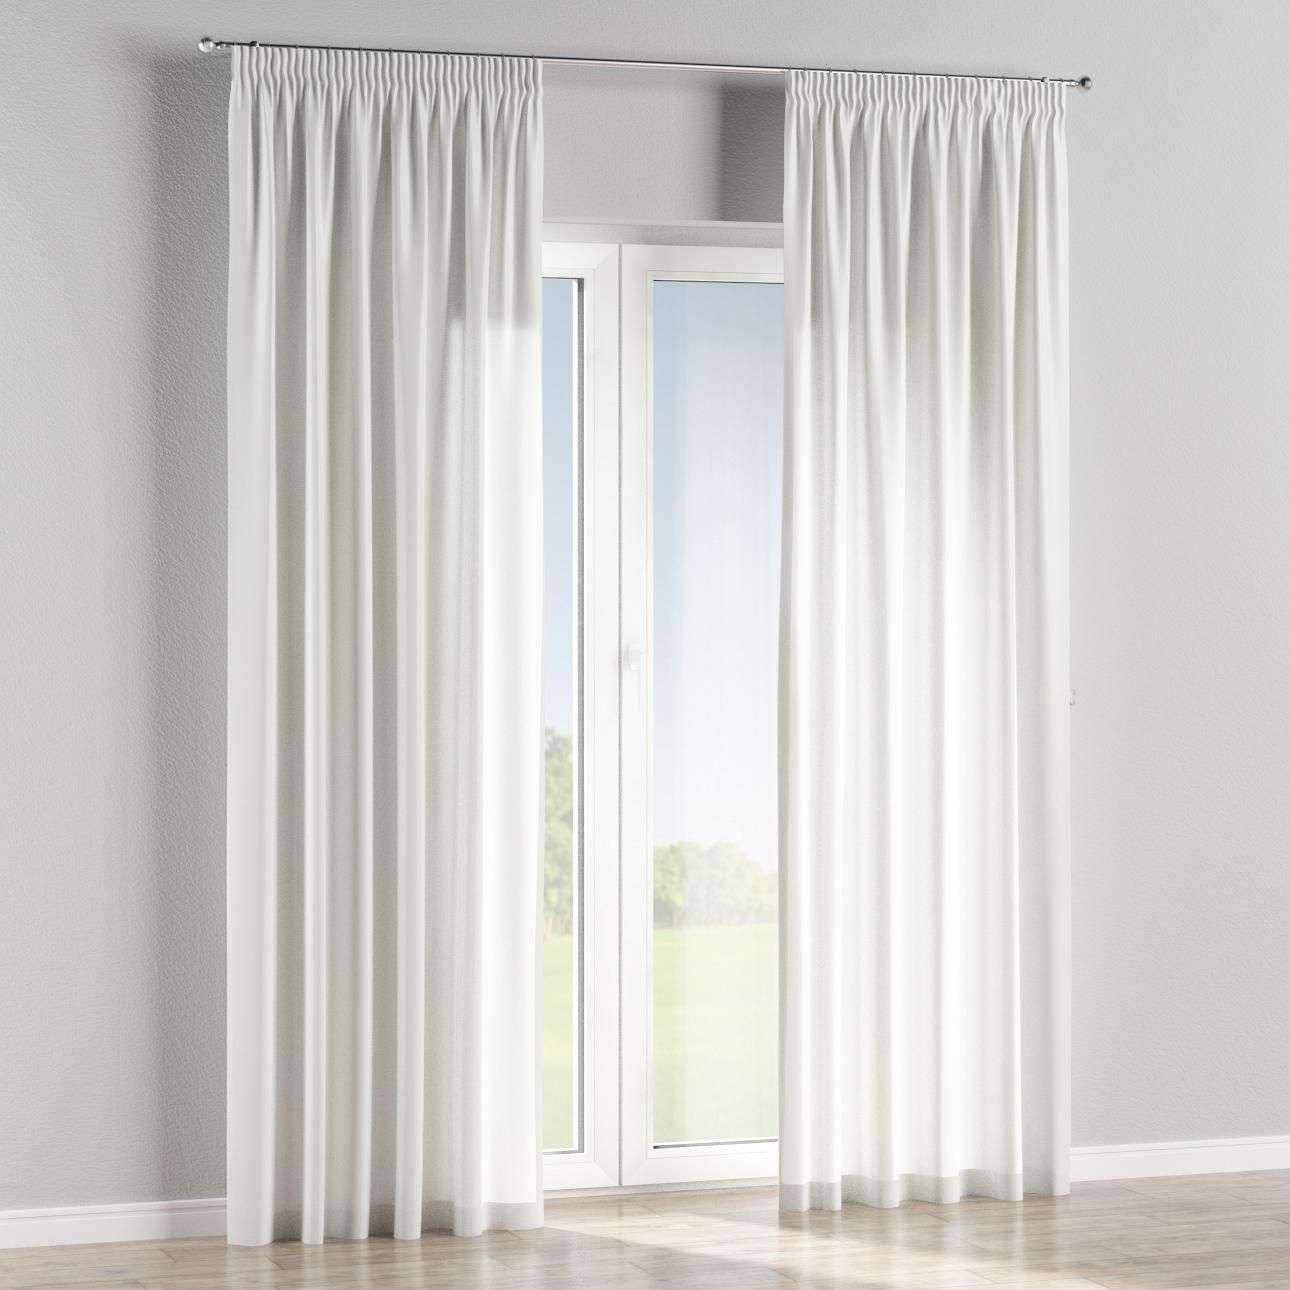 Pencil pleat lined curtains in collection Cardiff, fabric: 136-32